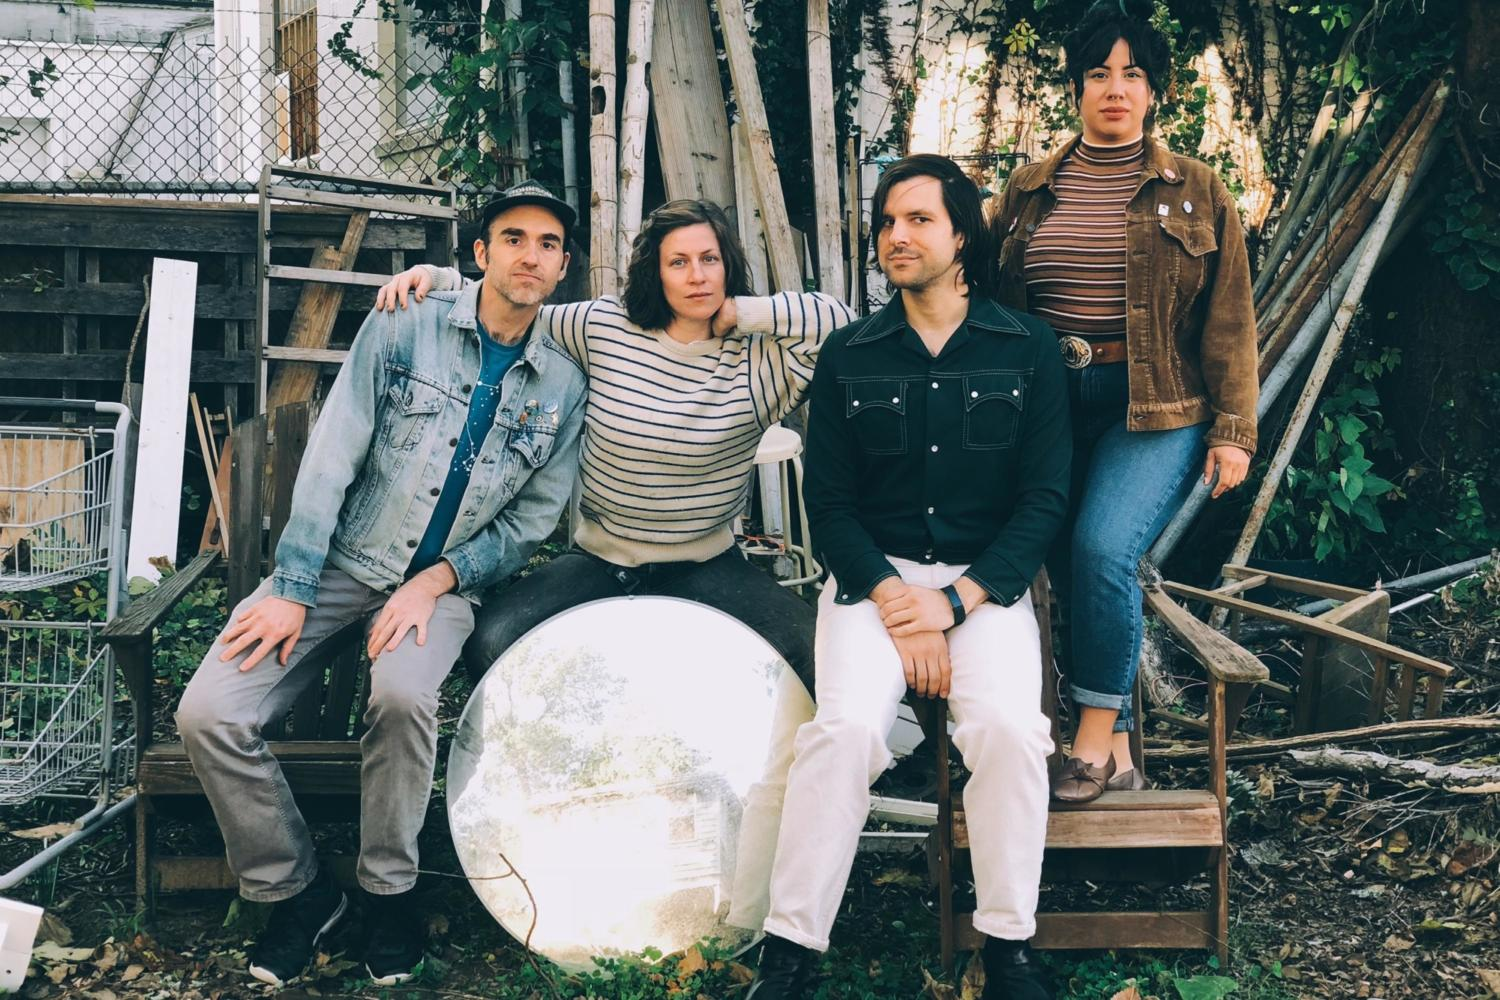 Gauche sign with Merge, share 'Conspiracy Theories'